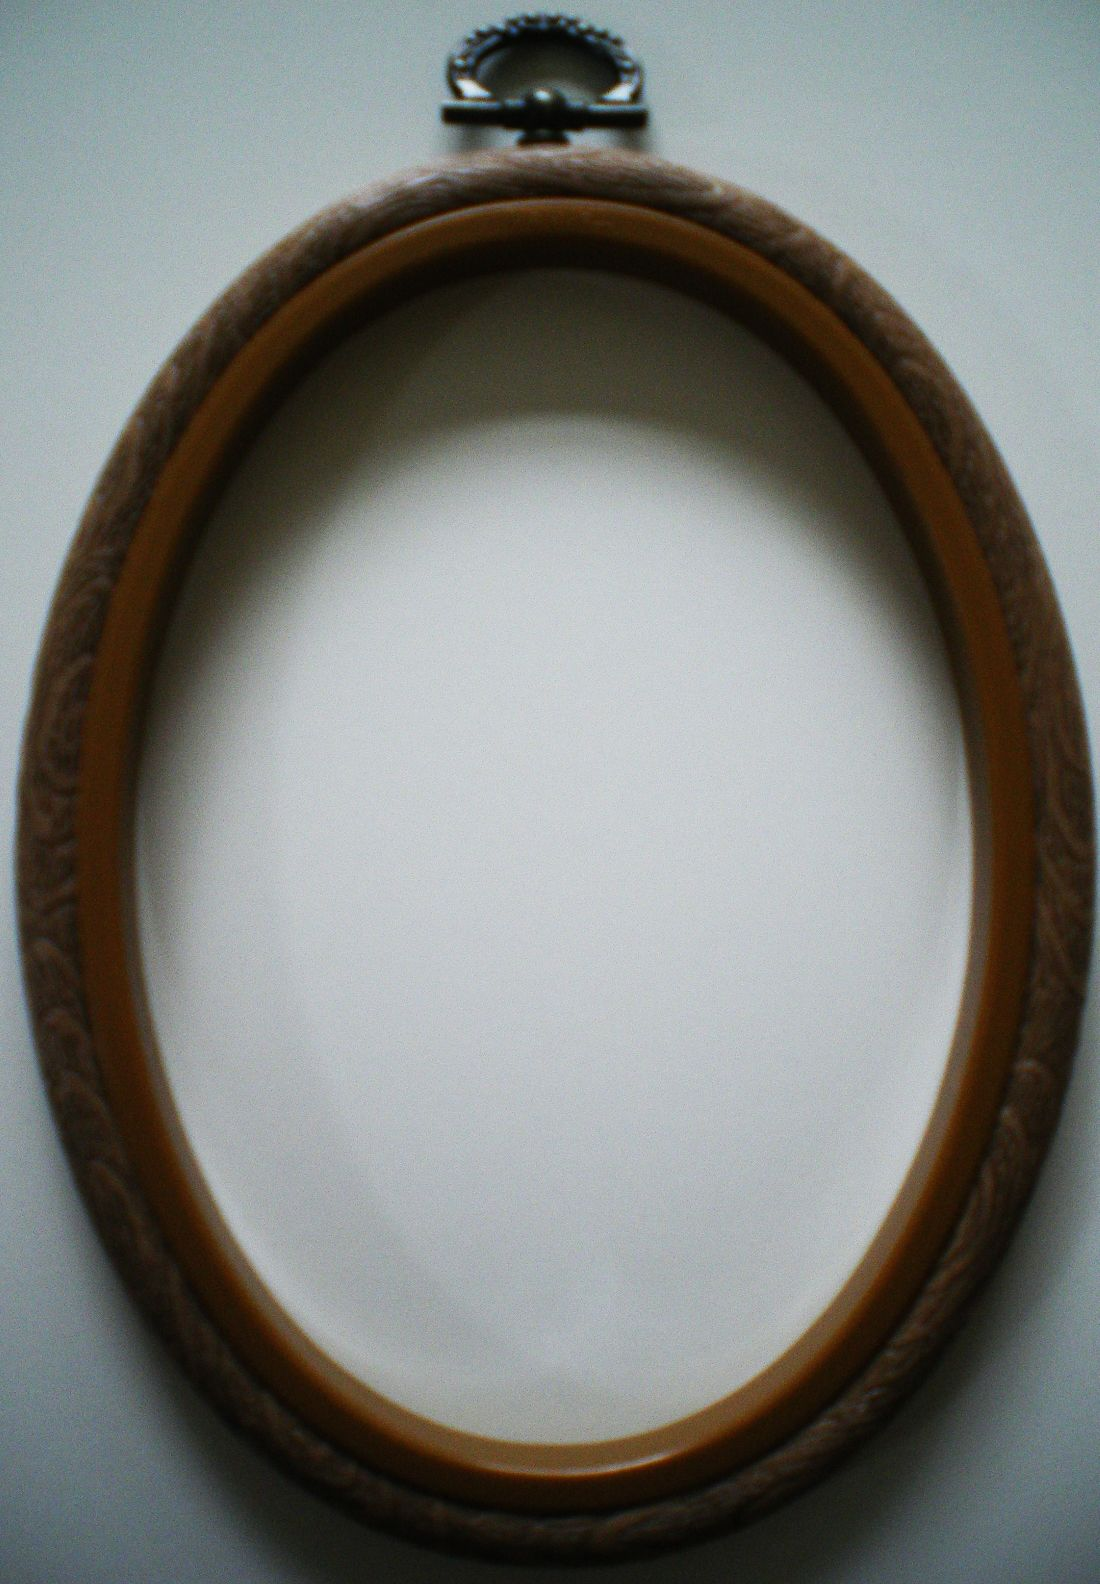 2.5 x 3.5 OVAL Woodgrain Effect Flexi Hoop Embroidery Cross Stitch Frame